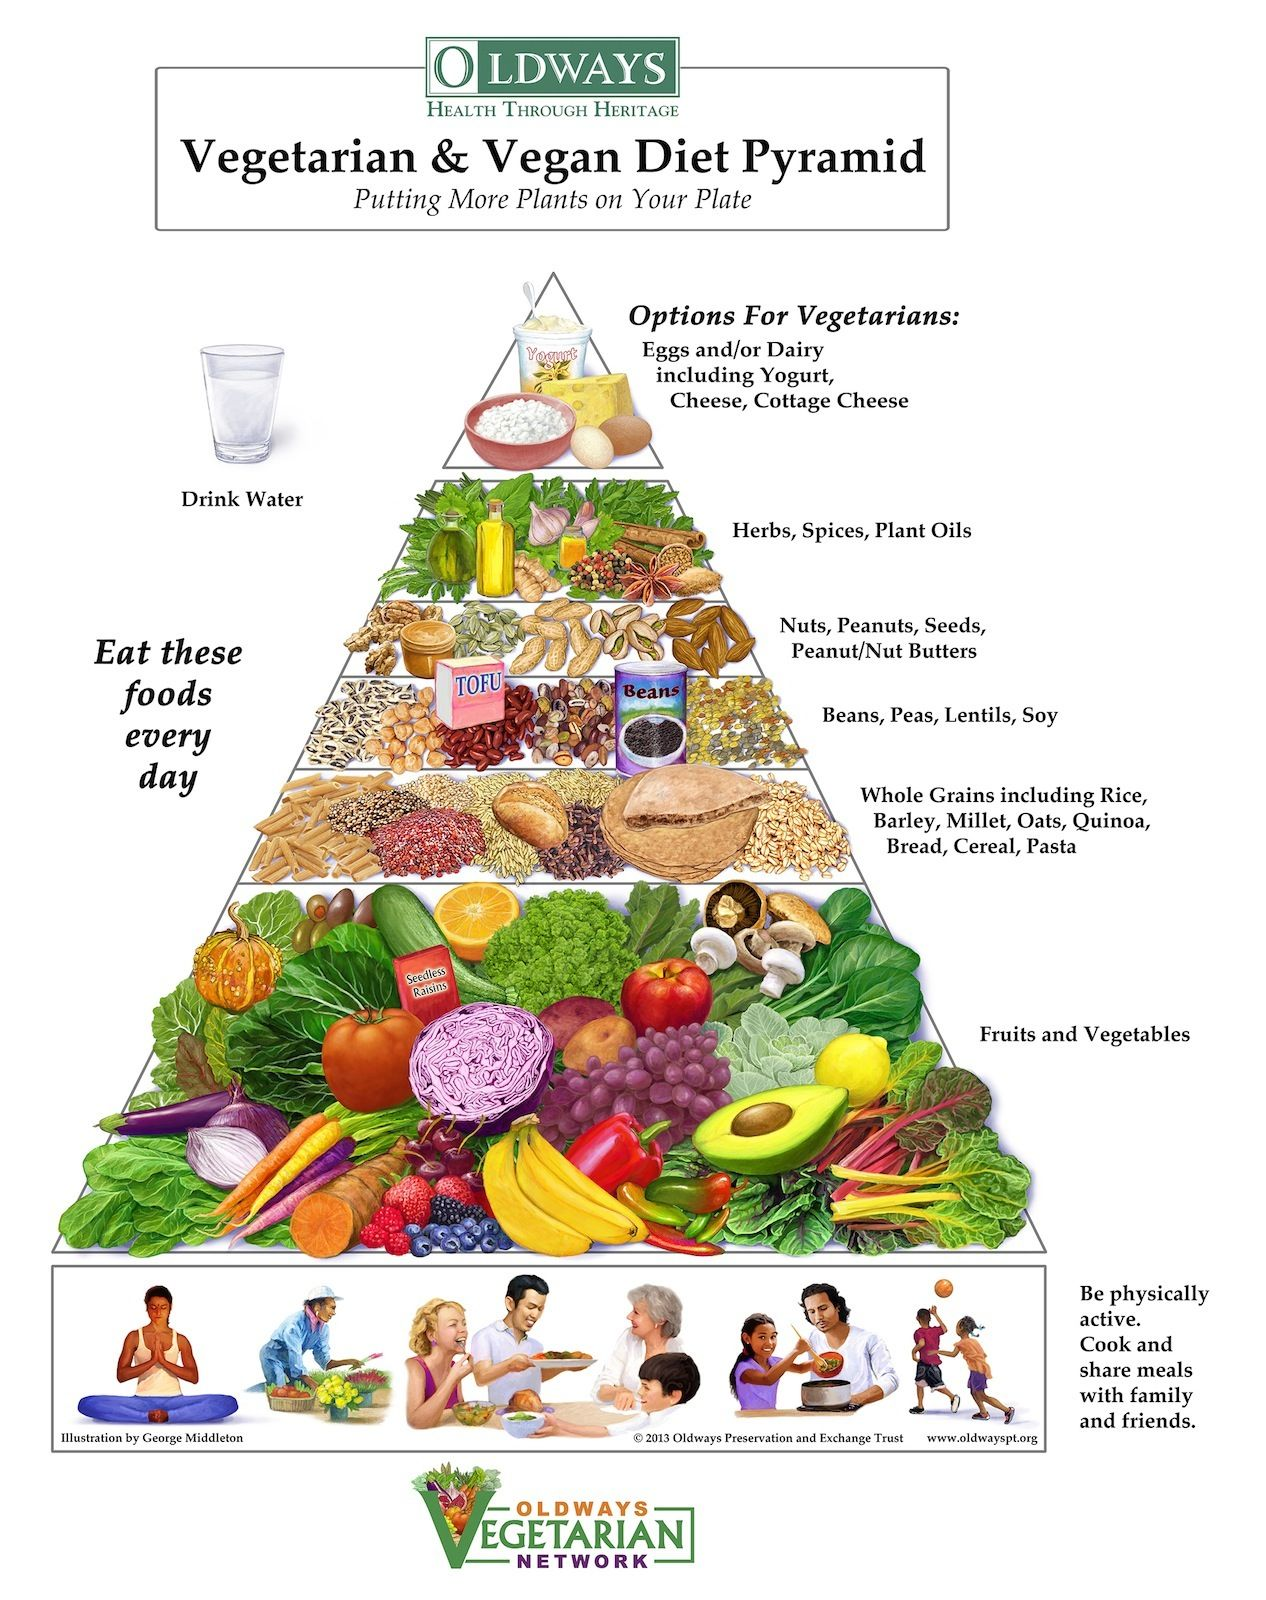 Oldways Vegetarian Vegan Diet Pyramid